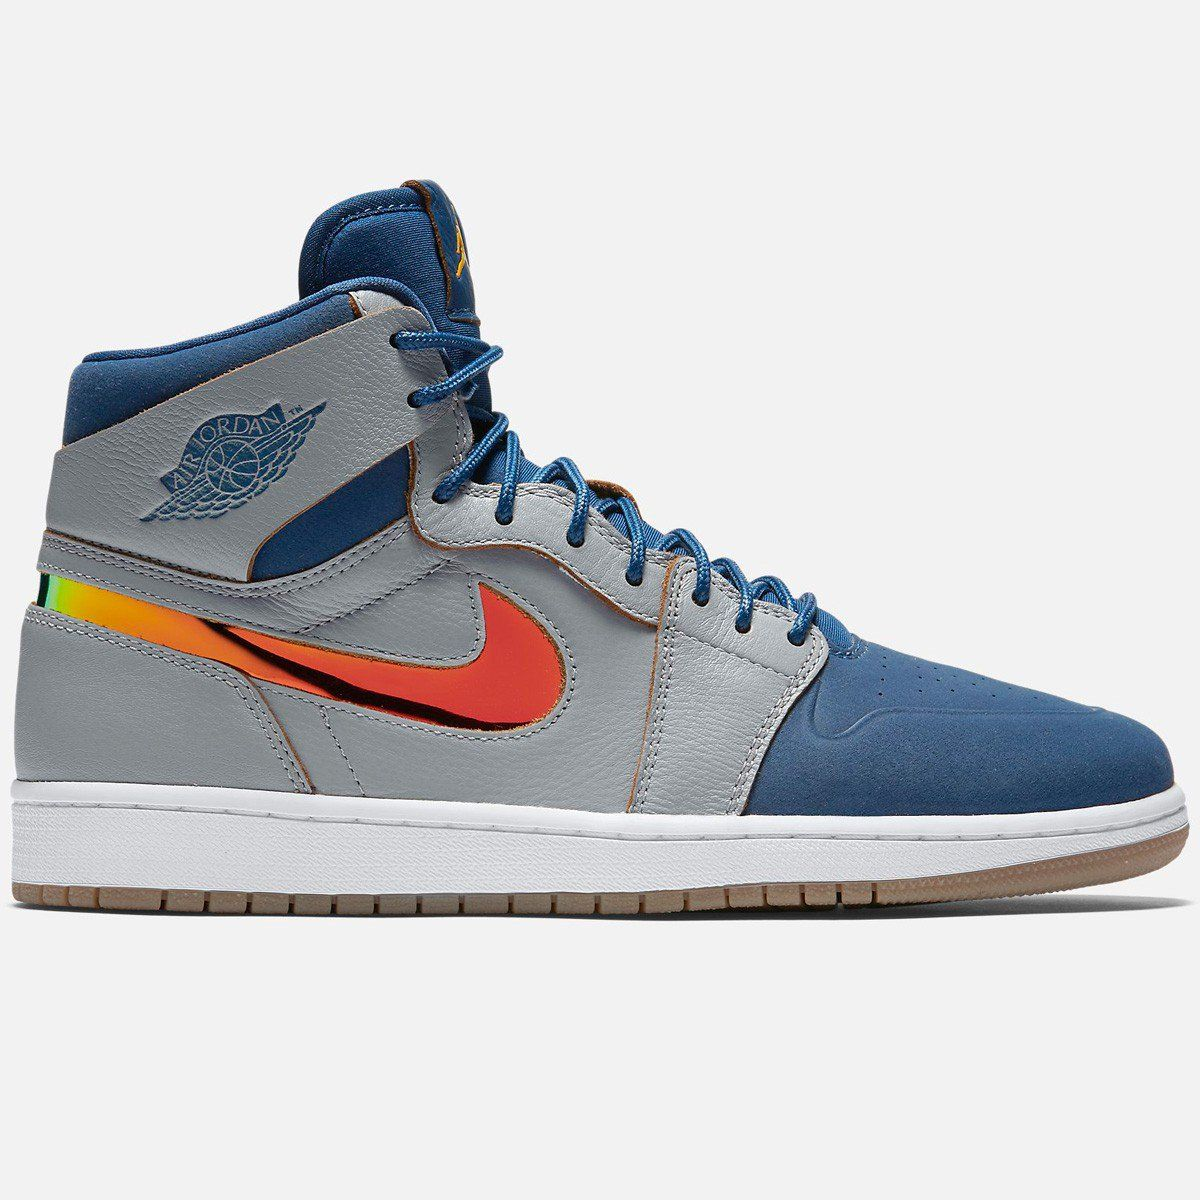 Jordan Air Jordan 1 Retro Hi 'Nouveau' (Wolf Grey/Collegiate Blue-